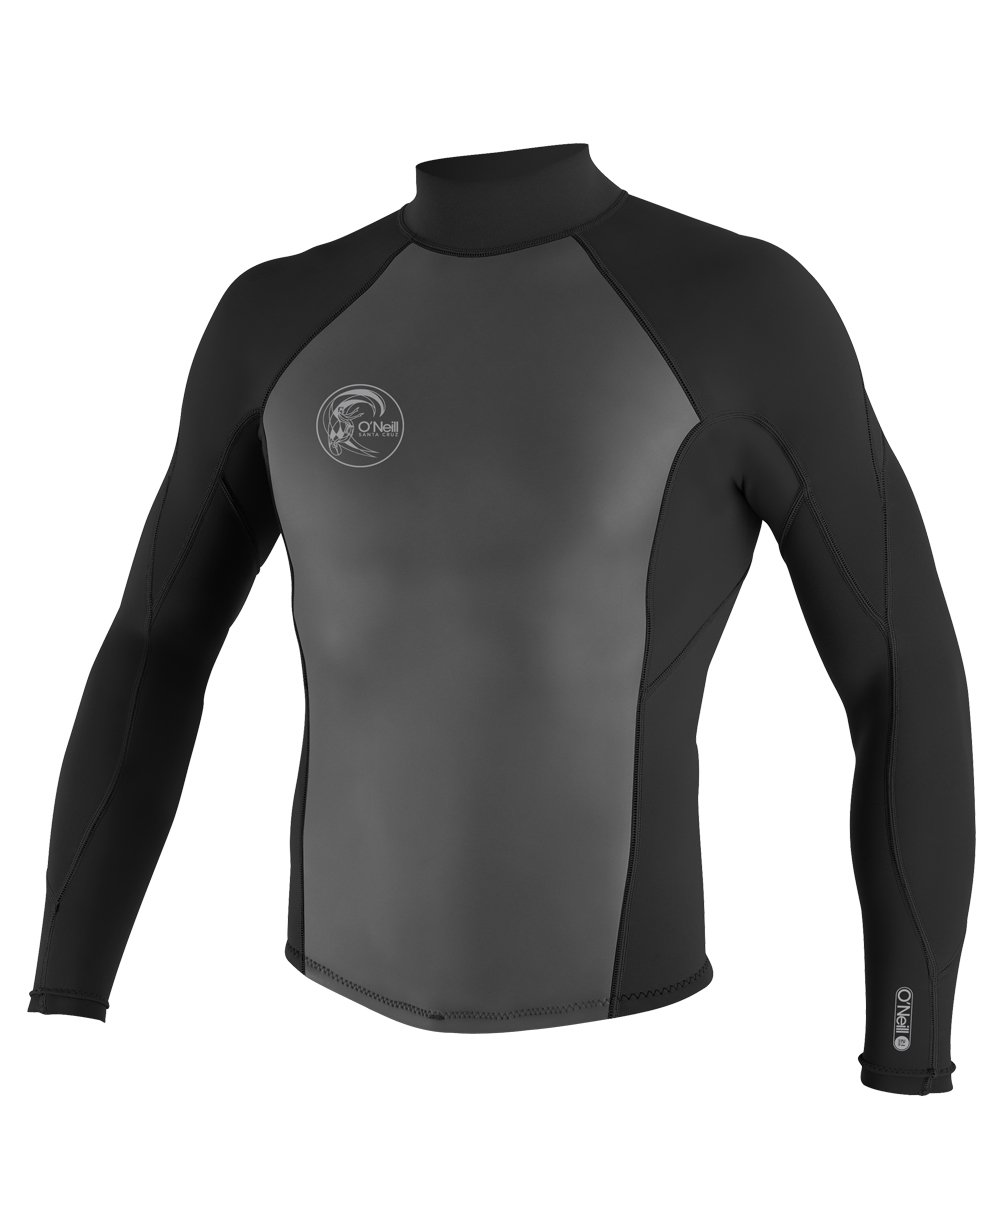 O'Neill  Men's O'Riginal 2/1mm Back Zip Jacket, Black,Large by O'Neill Wetsuits